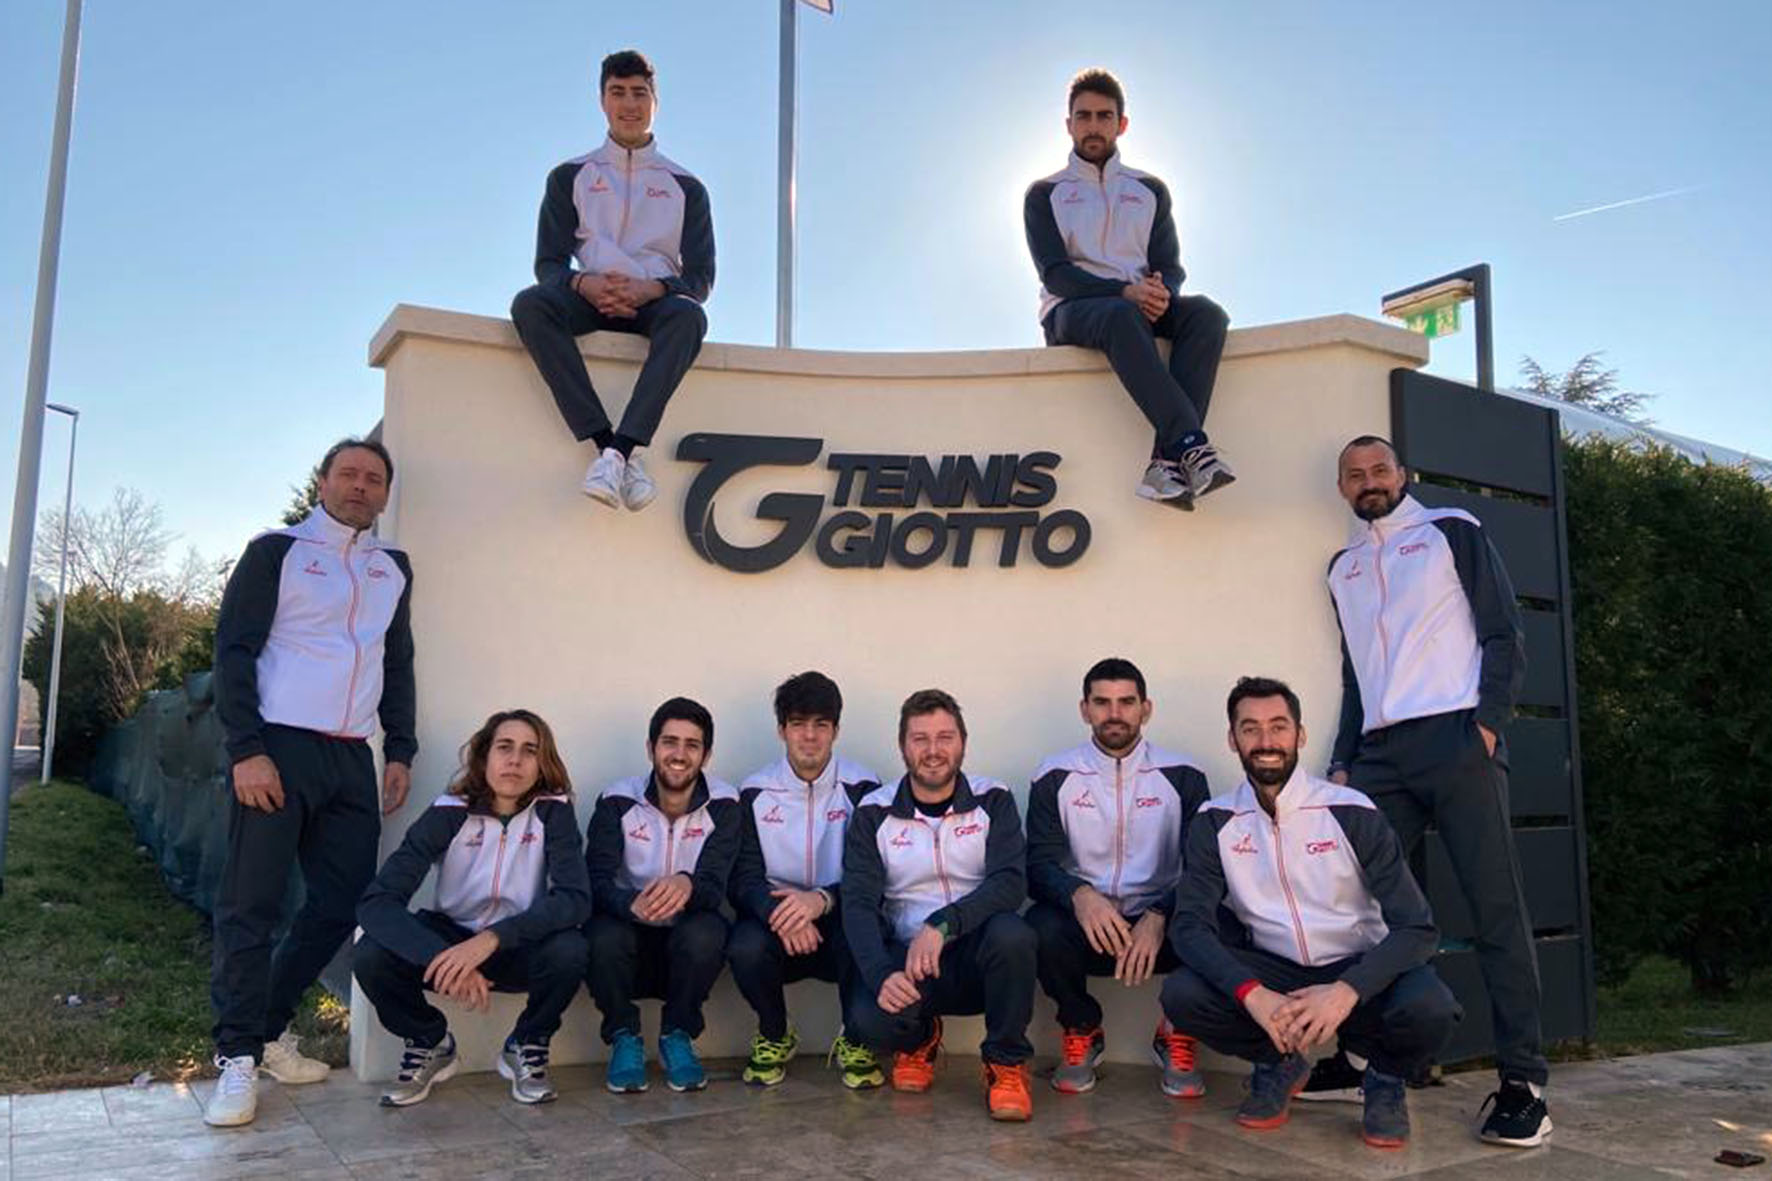 Tennis Giotto - Serie B 2020